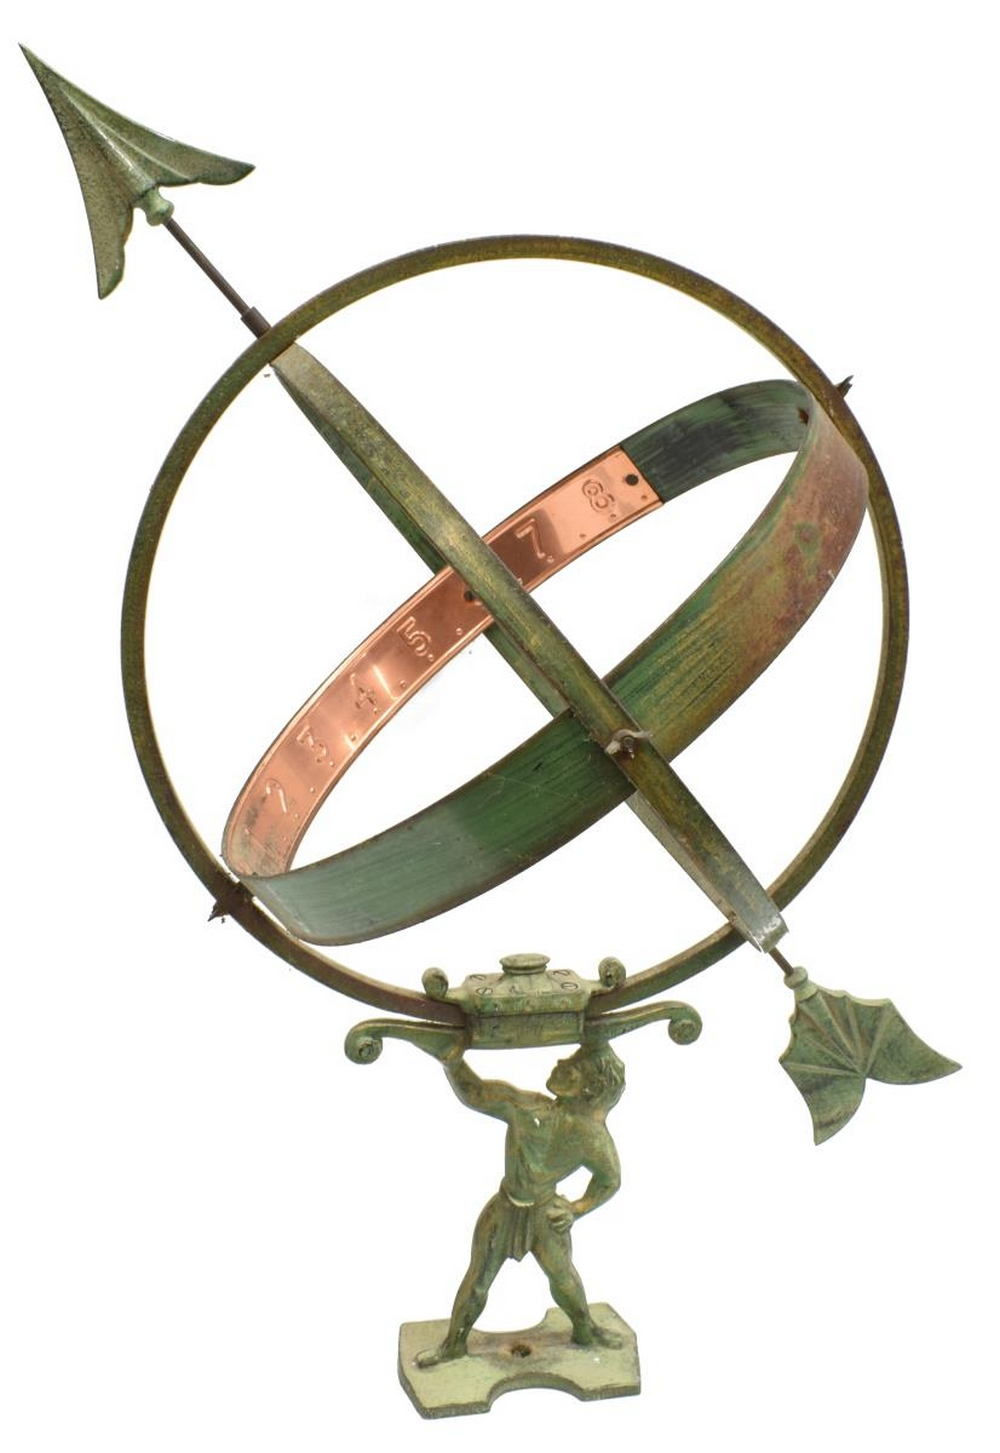 ARCHITECTURAL ARMILLARY SPHERE ATLAS SUNDIAL